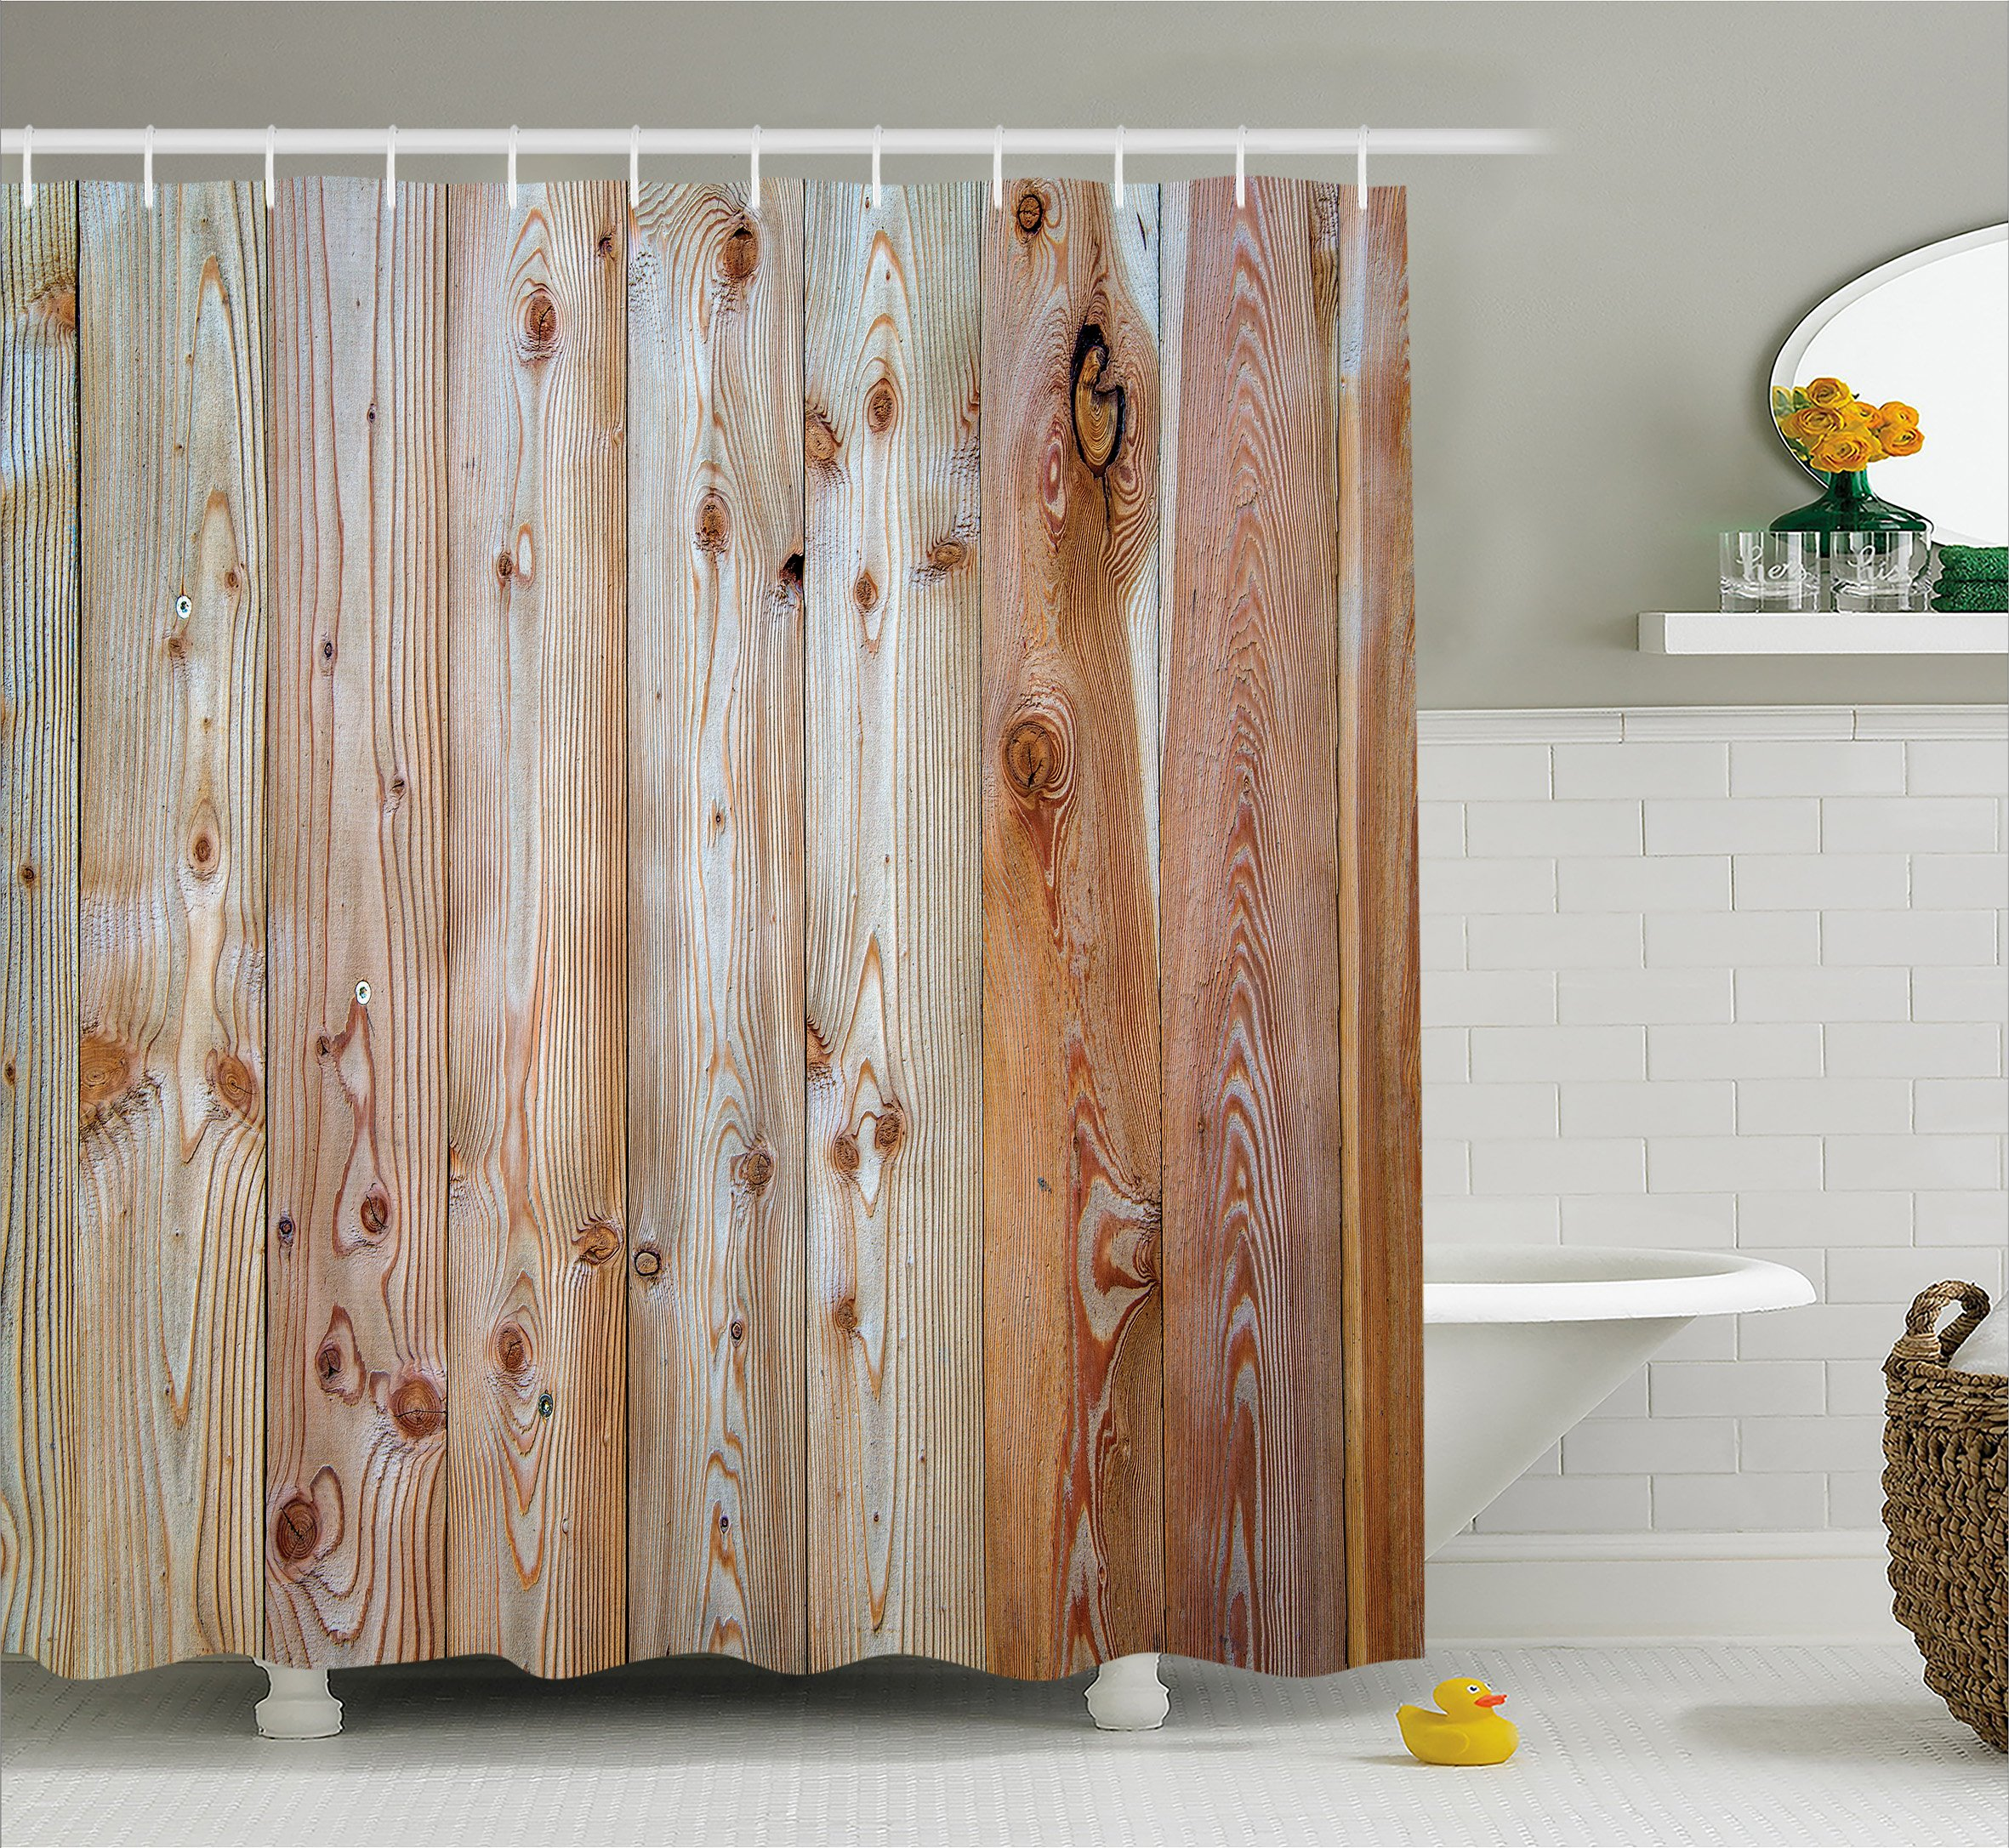 Rustic Home Decor Shower Curtain by Ambesonne, Monochrome Wood Minimalist Rough Lined Up Tiled Logs Row Plank Surface Image, Fabric Bathroom Decor Set with Hooks, 70 Inches, Cream